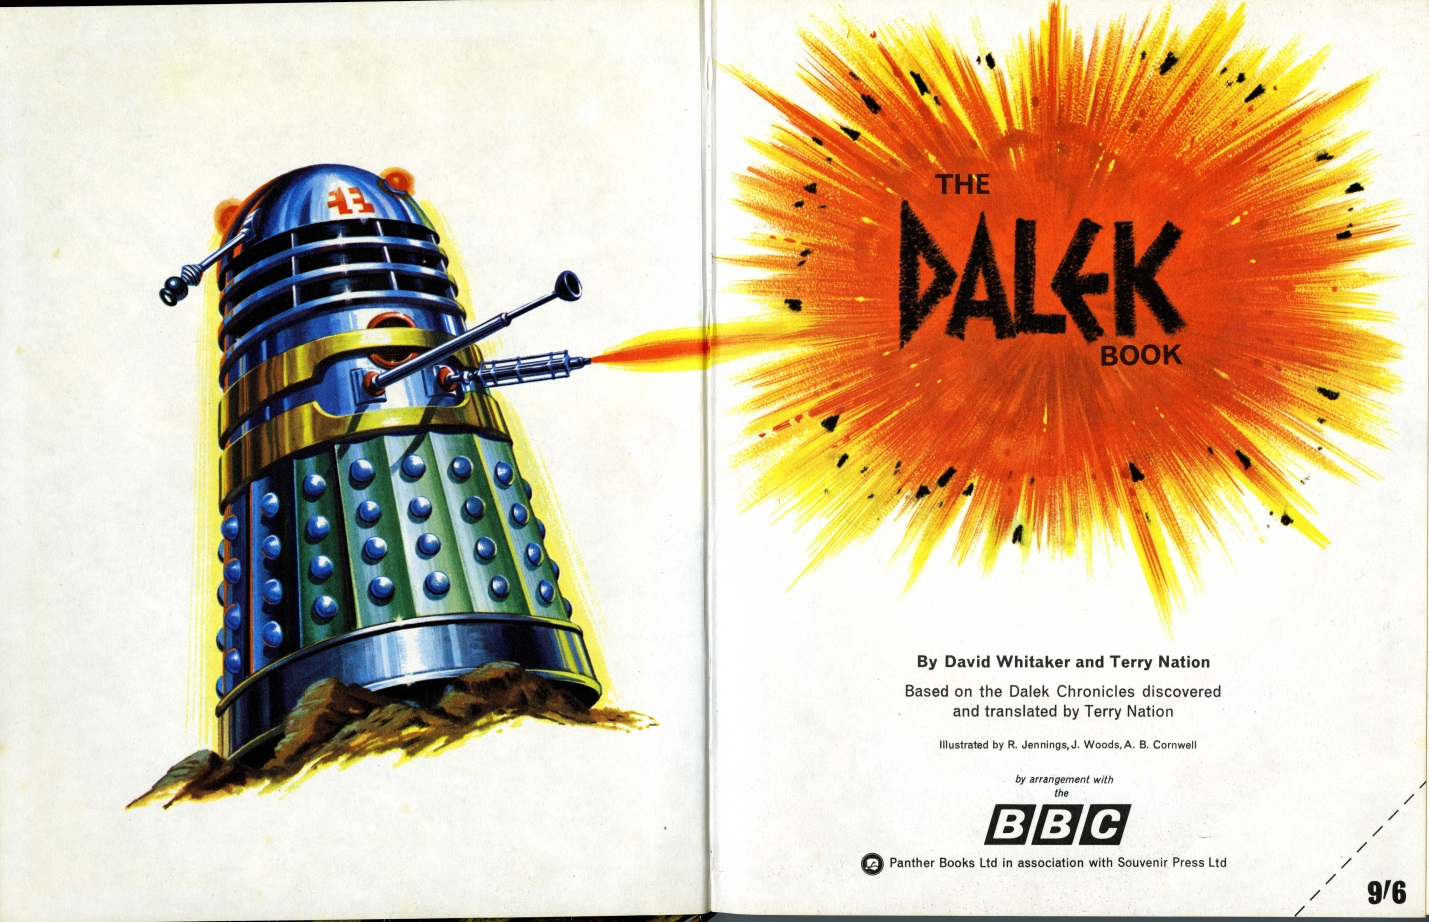 The Dalek Book frontispiece and title page